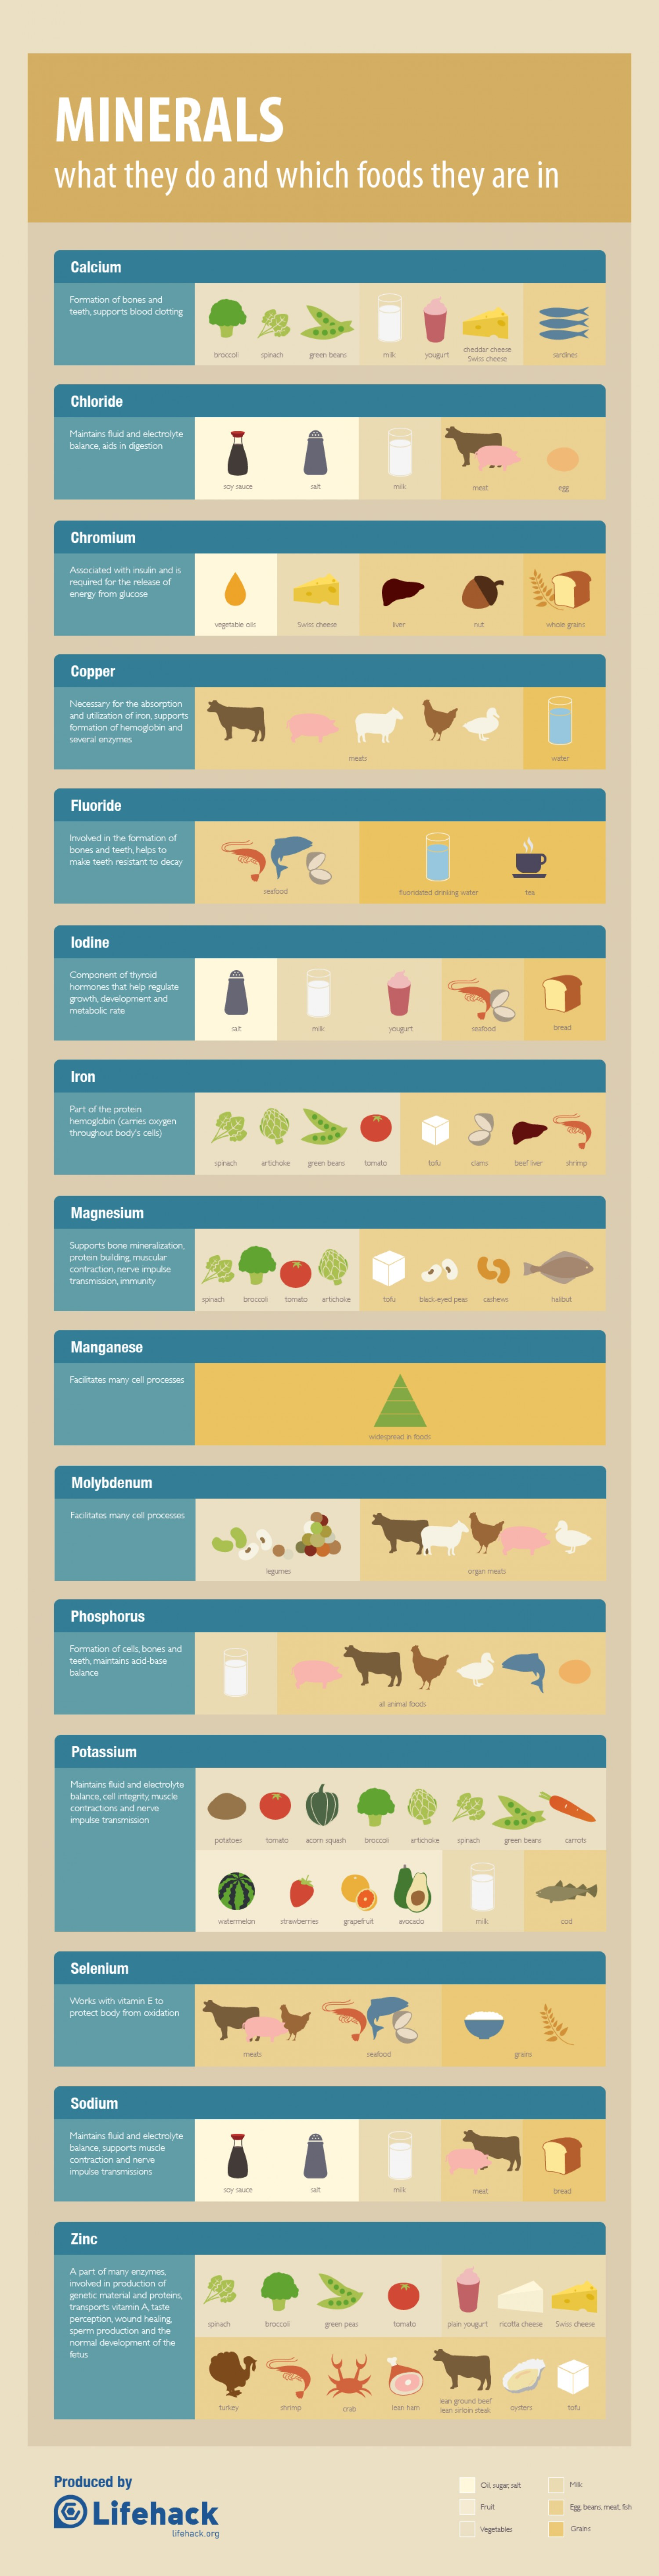 nutrition-minerals-cheat-sheet--food-sources.jpg